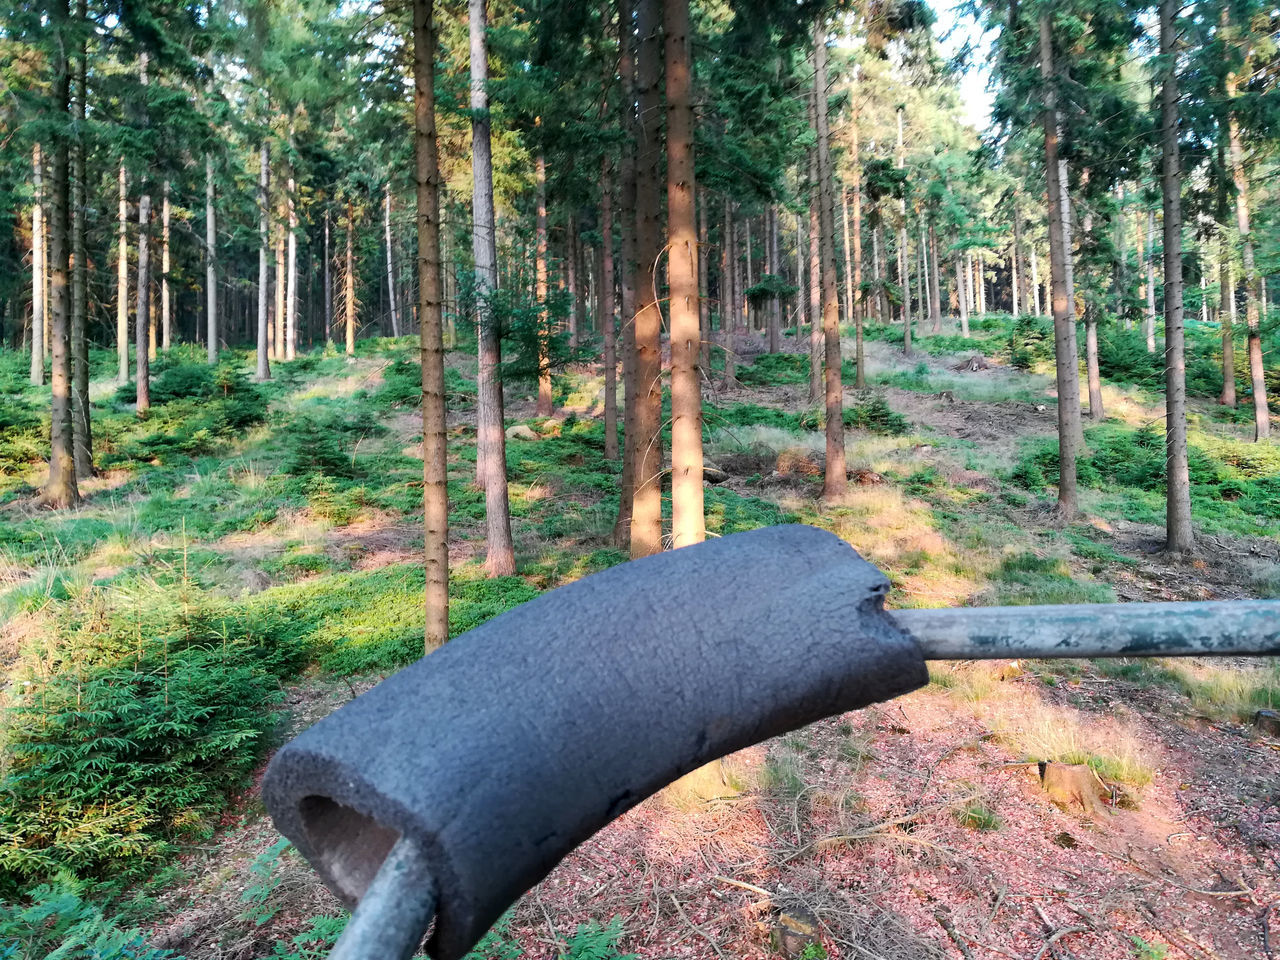 Beauty In Nature Day Forest Forestwalk Gun Circulation Gun Pad Hunter Chair Landscape Nature No People Outdoors Scenics Teutoburg Forest Teutoburger Wald Tree Tree Trunk Upstairs